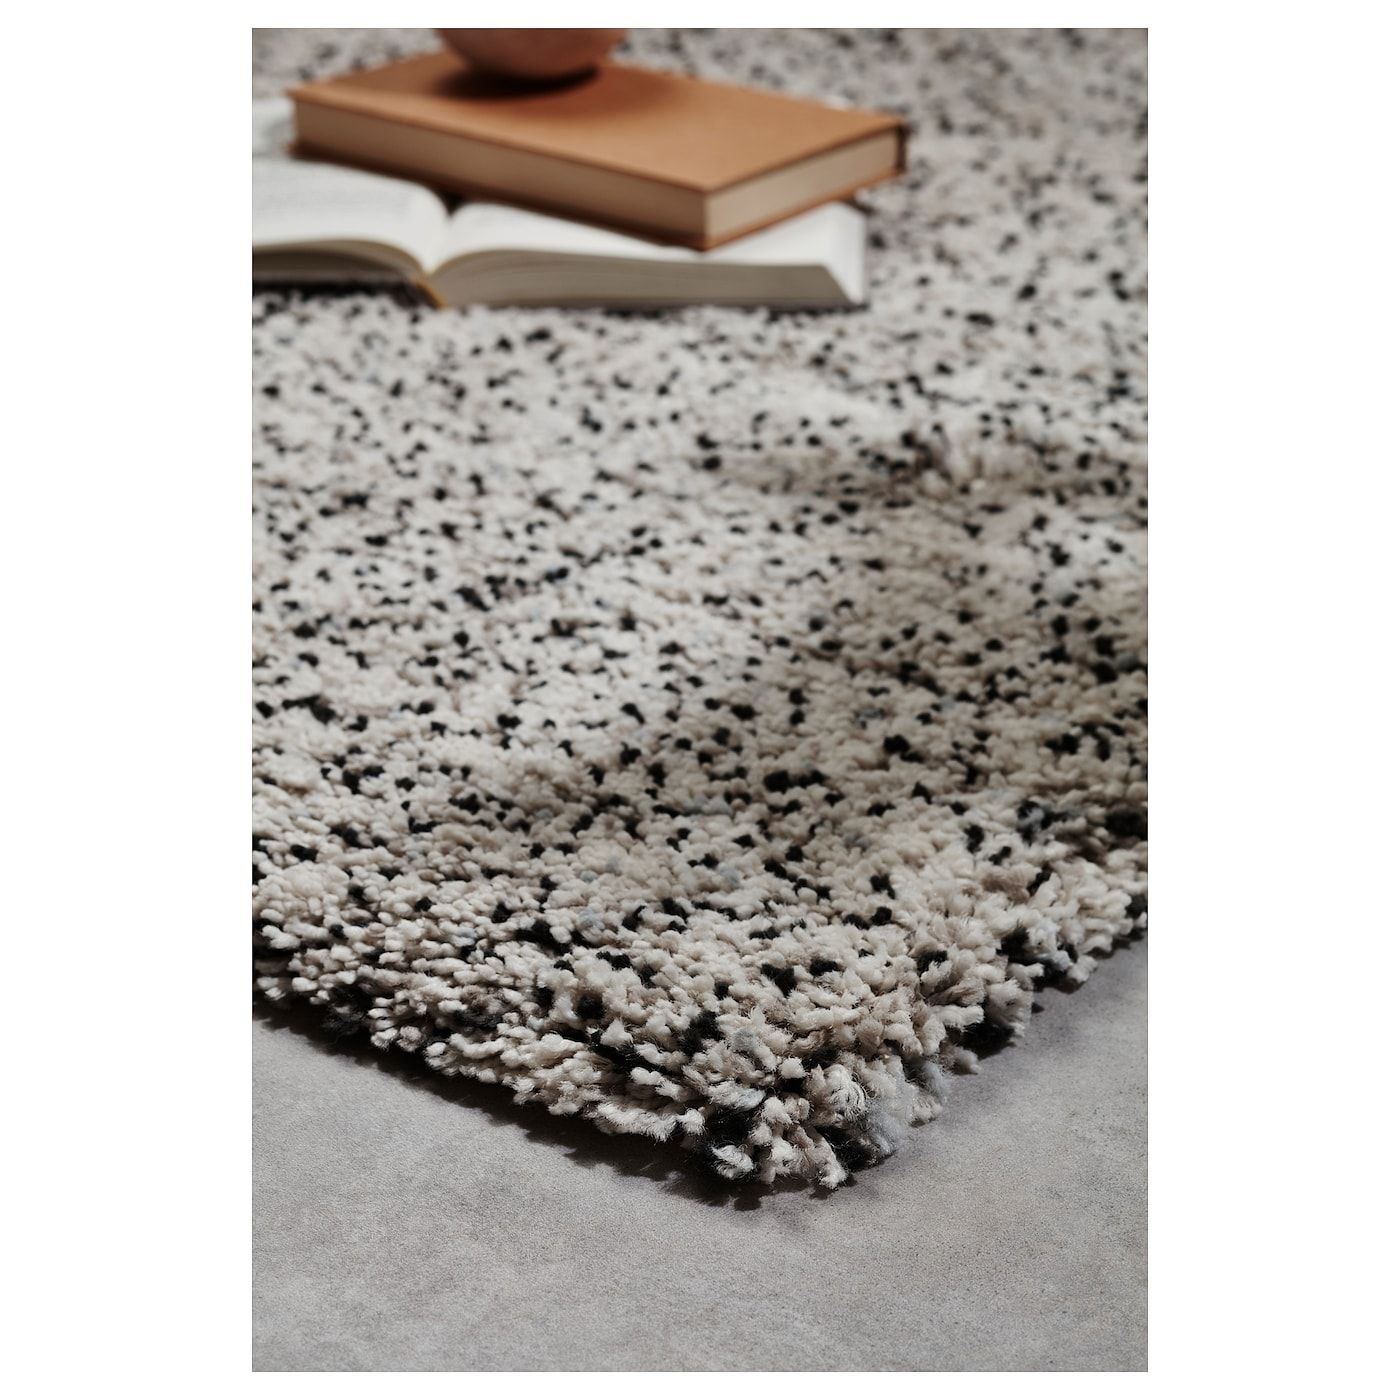 Vindum Rug High Pile White Ikea In 2020 Rugs How To Clean Carpet Ikea